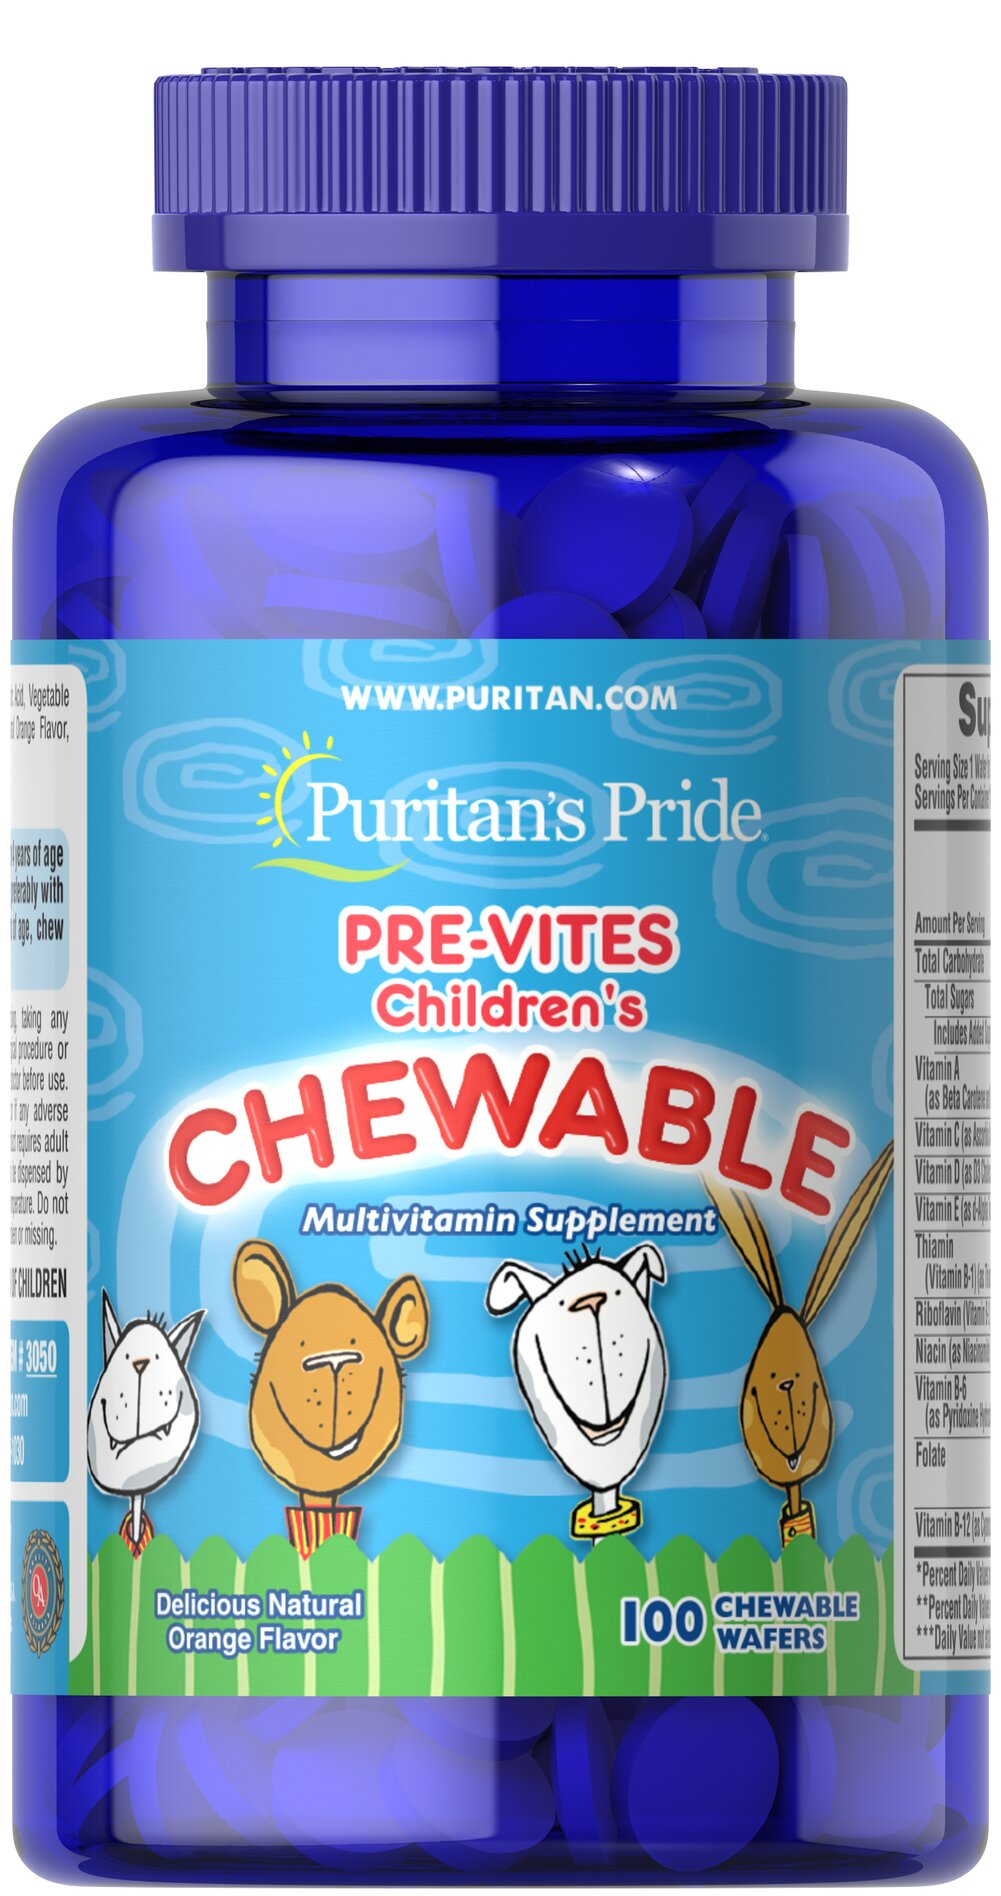 Pre-Vites Children's Multivitamin <p>Pre-Vites is the children's chewable multivitamin made with natural flavors. This delicious orange-flavored tablet provides active children with ten essential vitamins for proper growth and development. Preservative-free!</p> 100 Chewables  $8.99